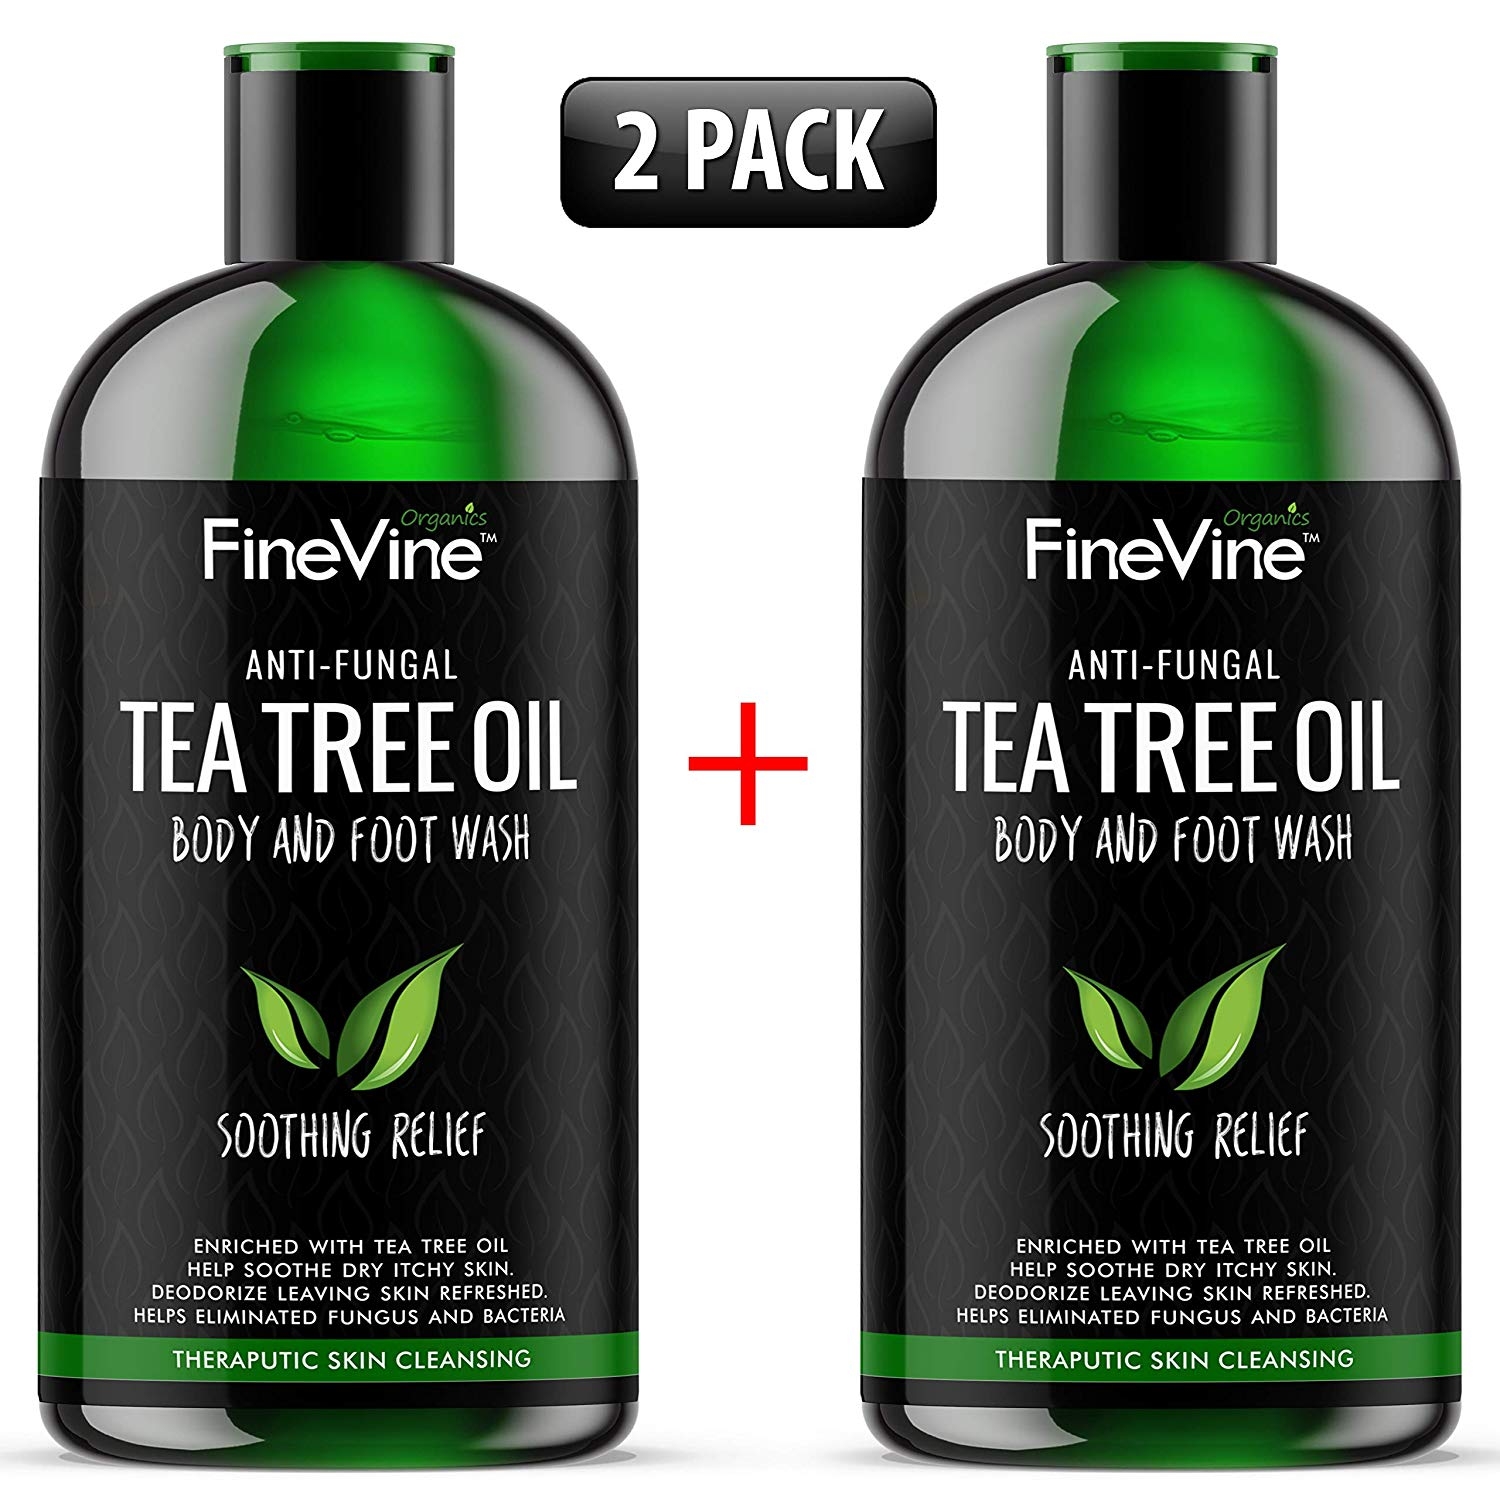 FineVine Organic Body Wash, Tea Tree Oil